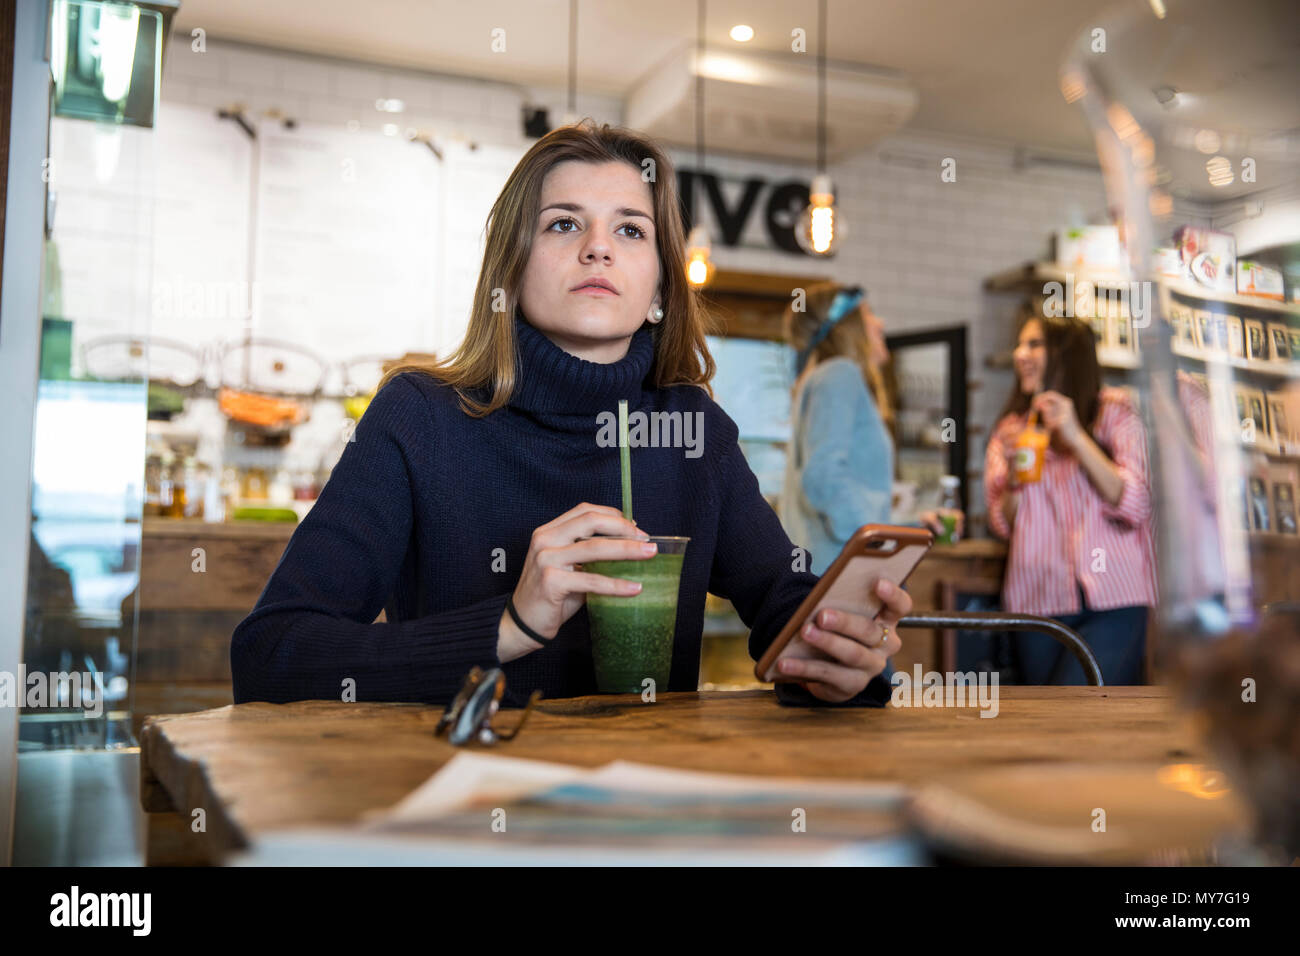 Young woman sitting in cafe, holding smartphone, drinking smoothie - Stock Image